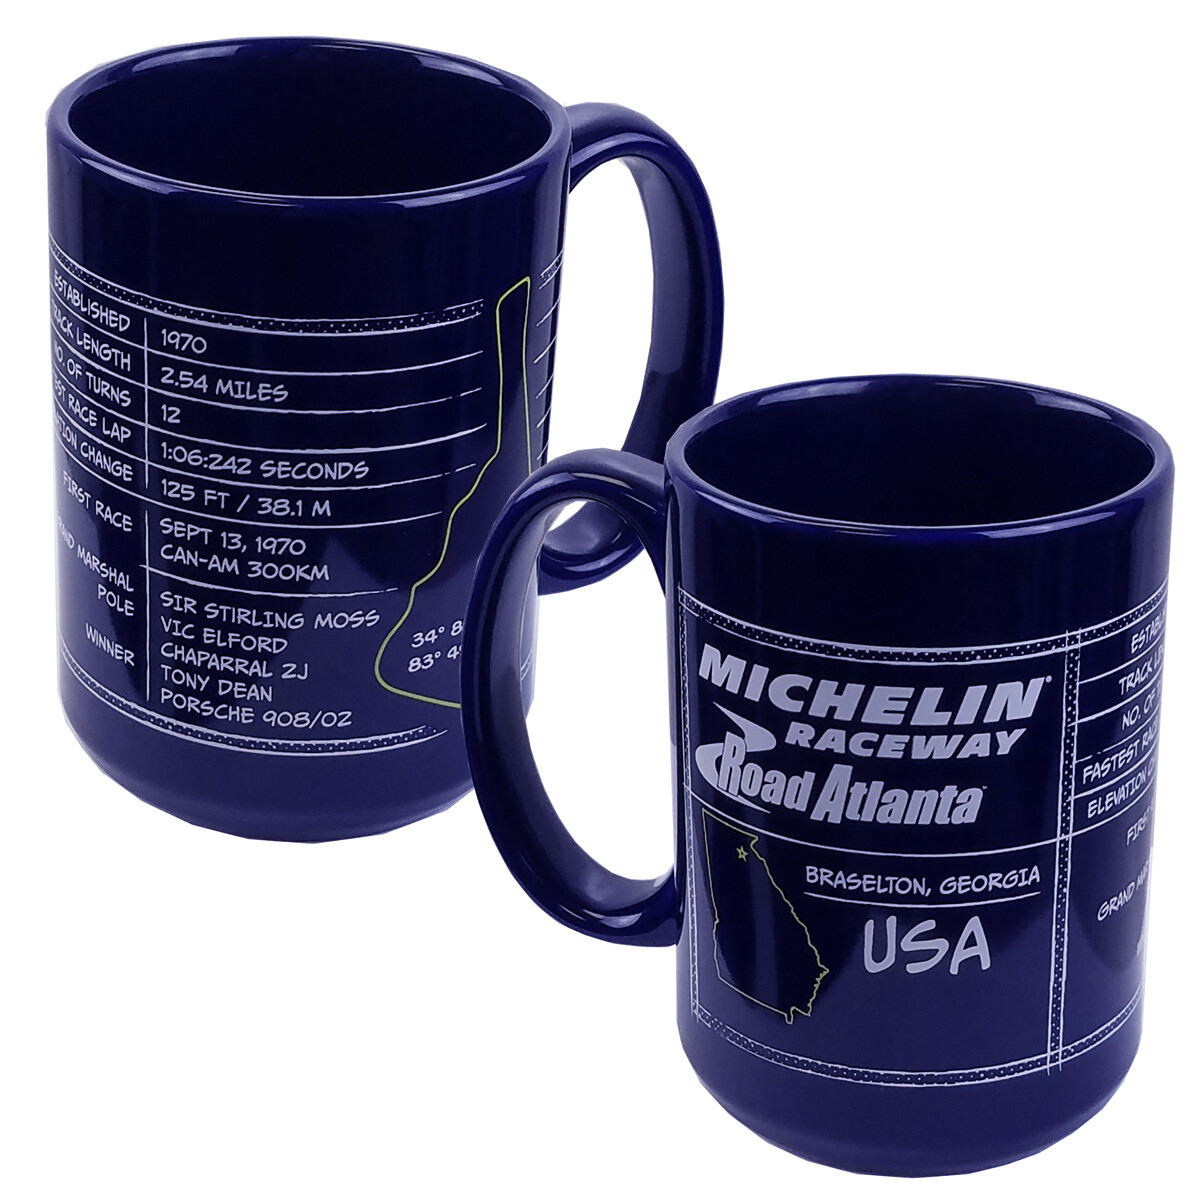 Michelin Raceway Road Atlanta Coffee Mug - Blue - 15 oz.